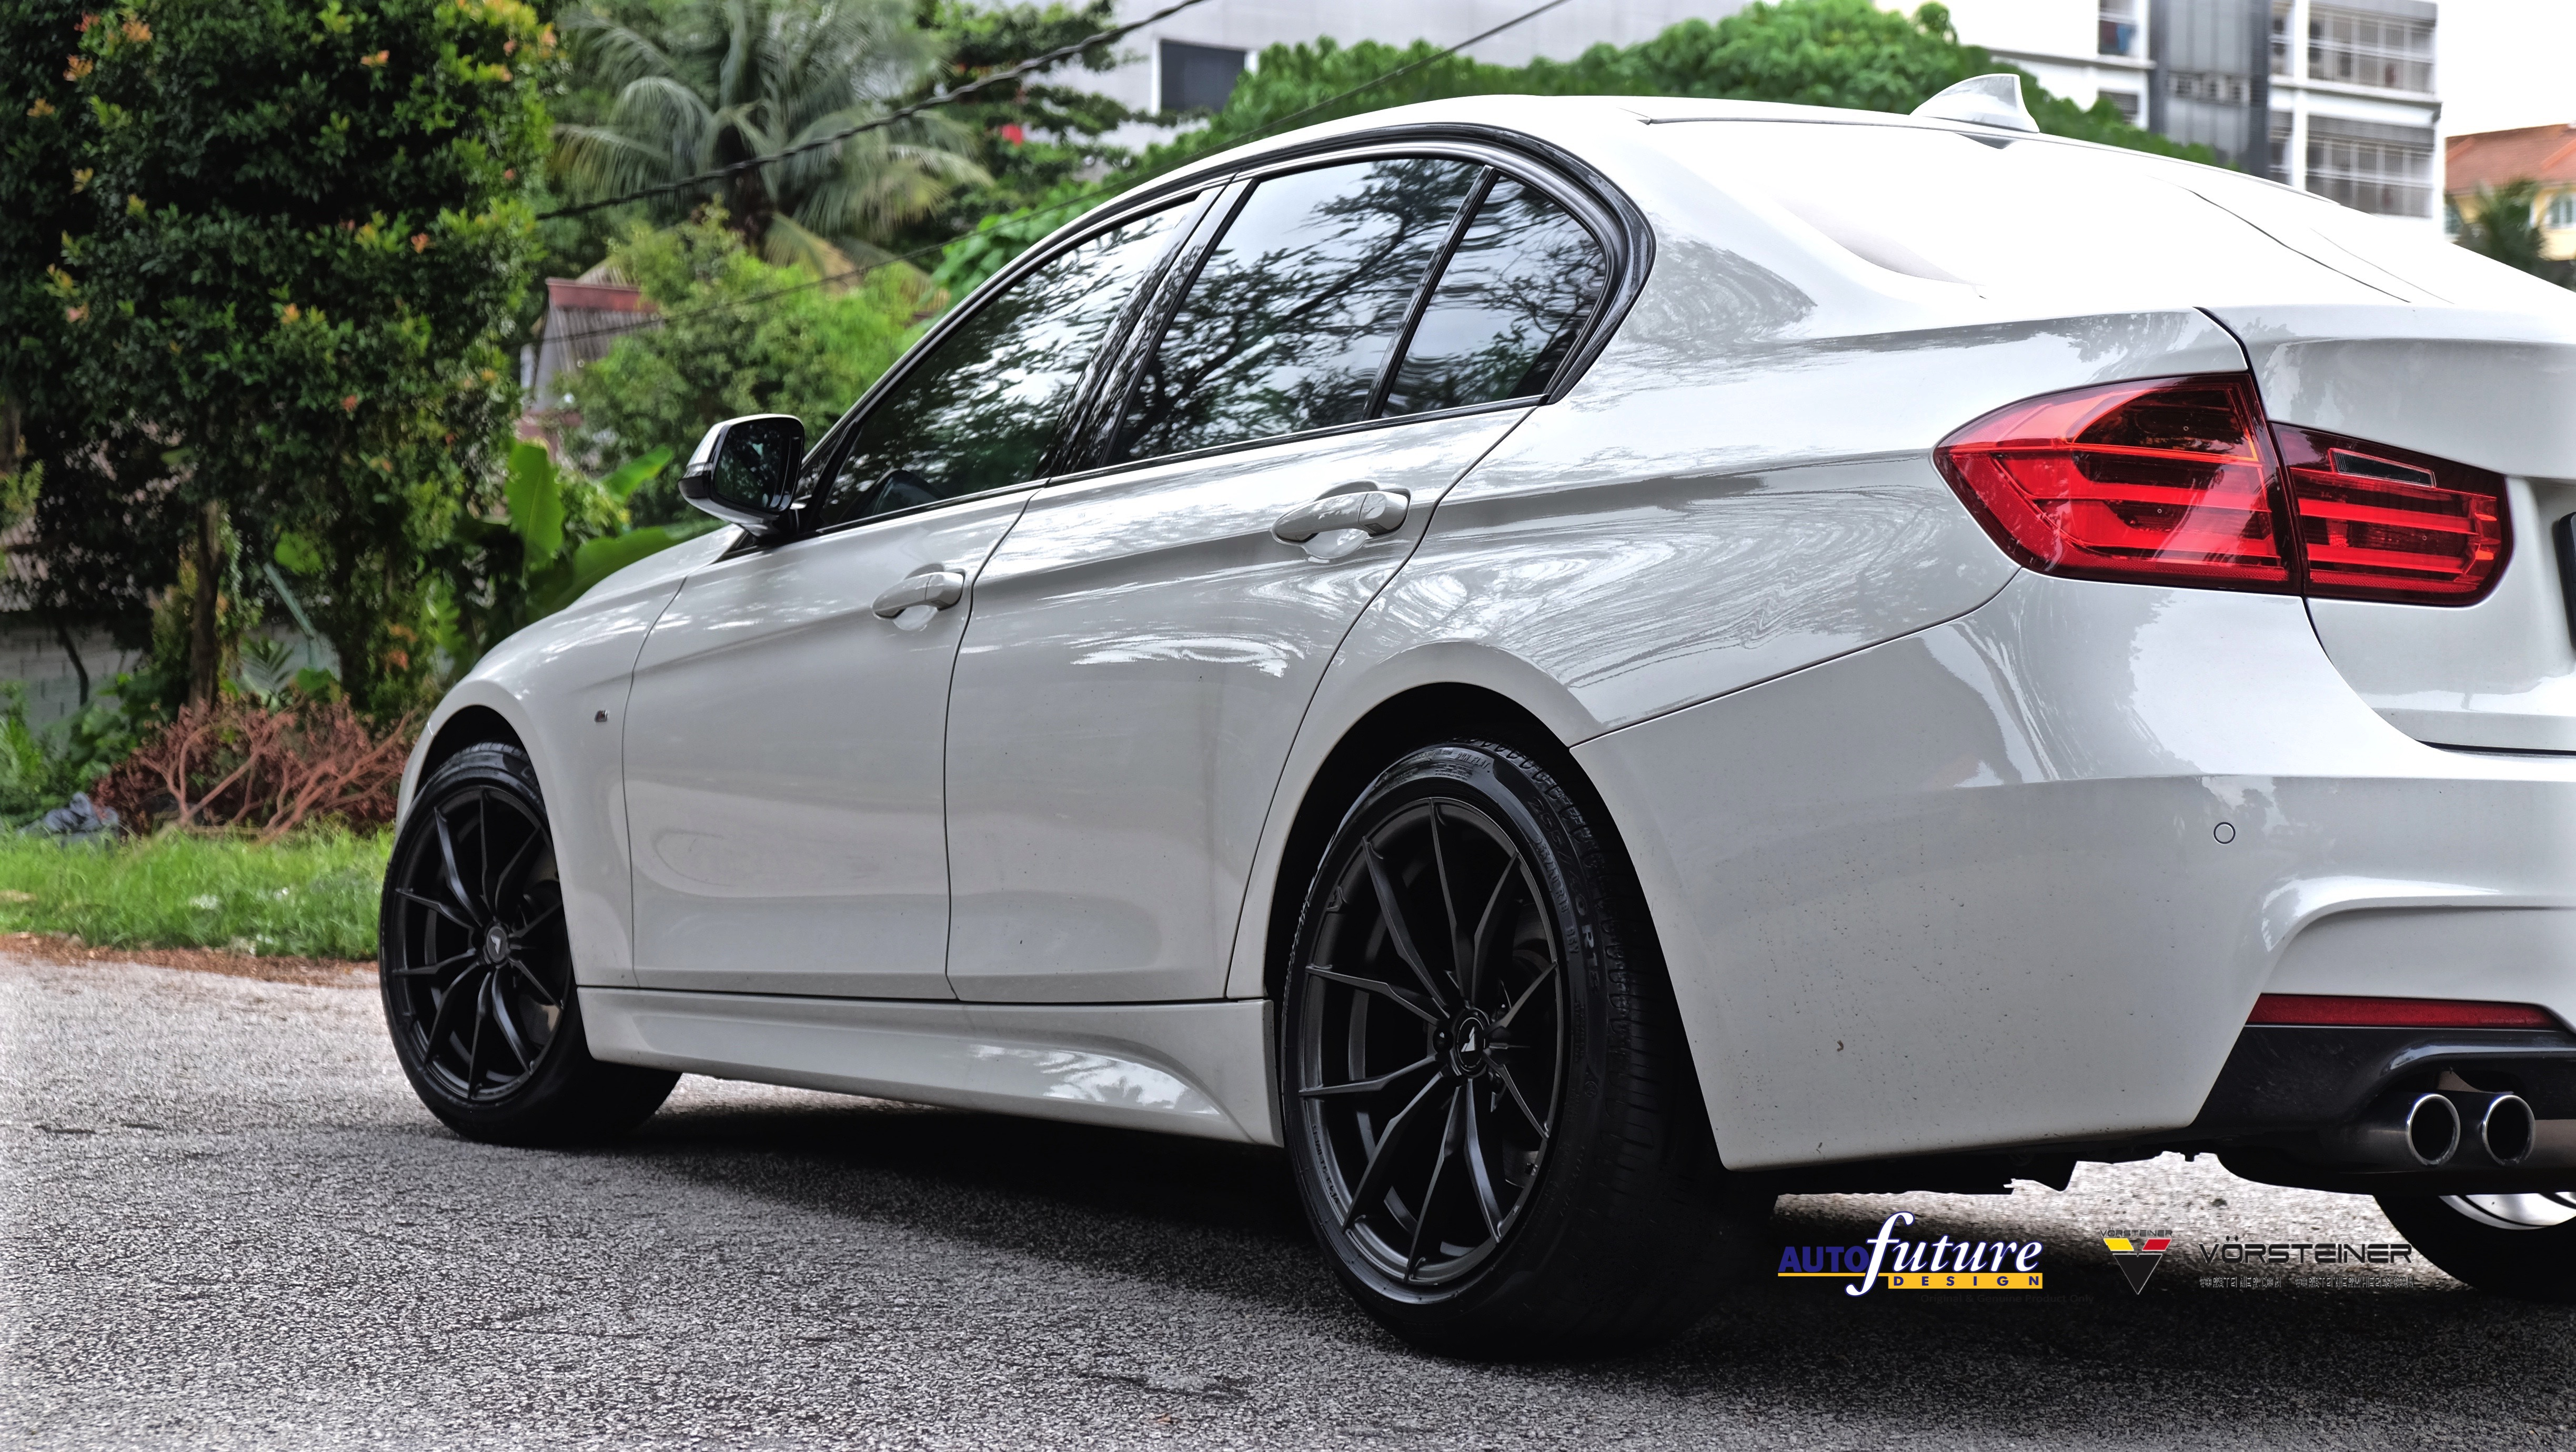 Bmw F30 3 Series Made Better With A Set Of Vorsteiner V Ff 108 Alloys Autofuture Design Sdn Bhd